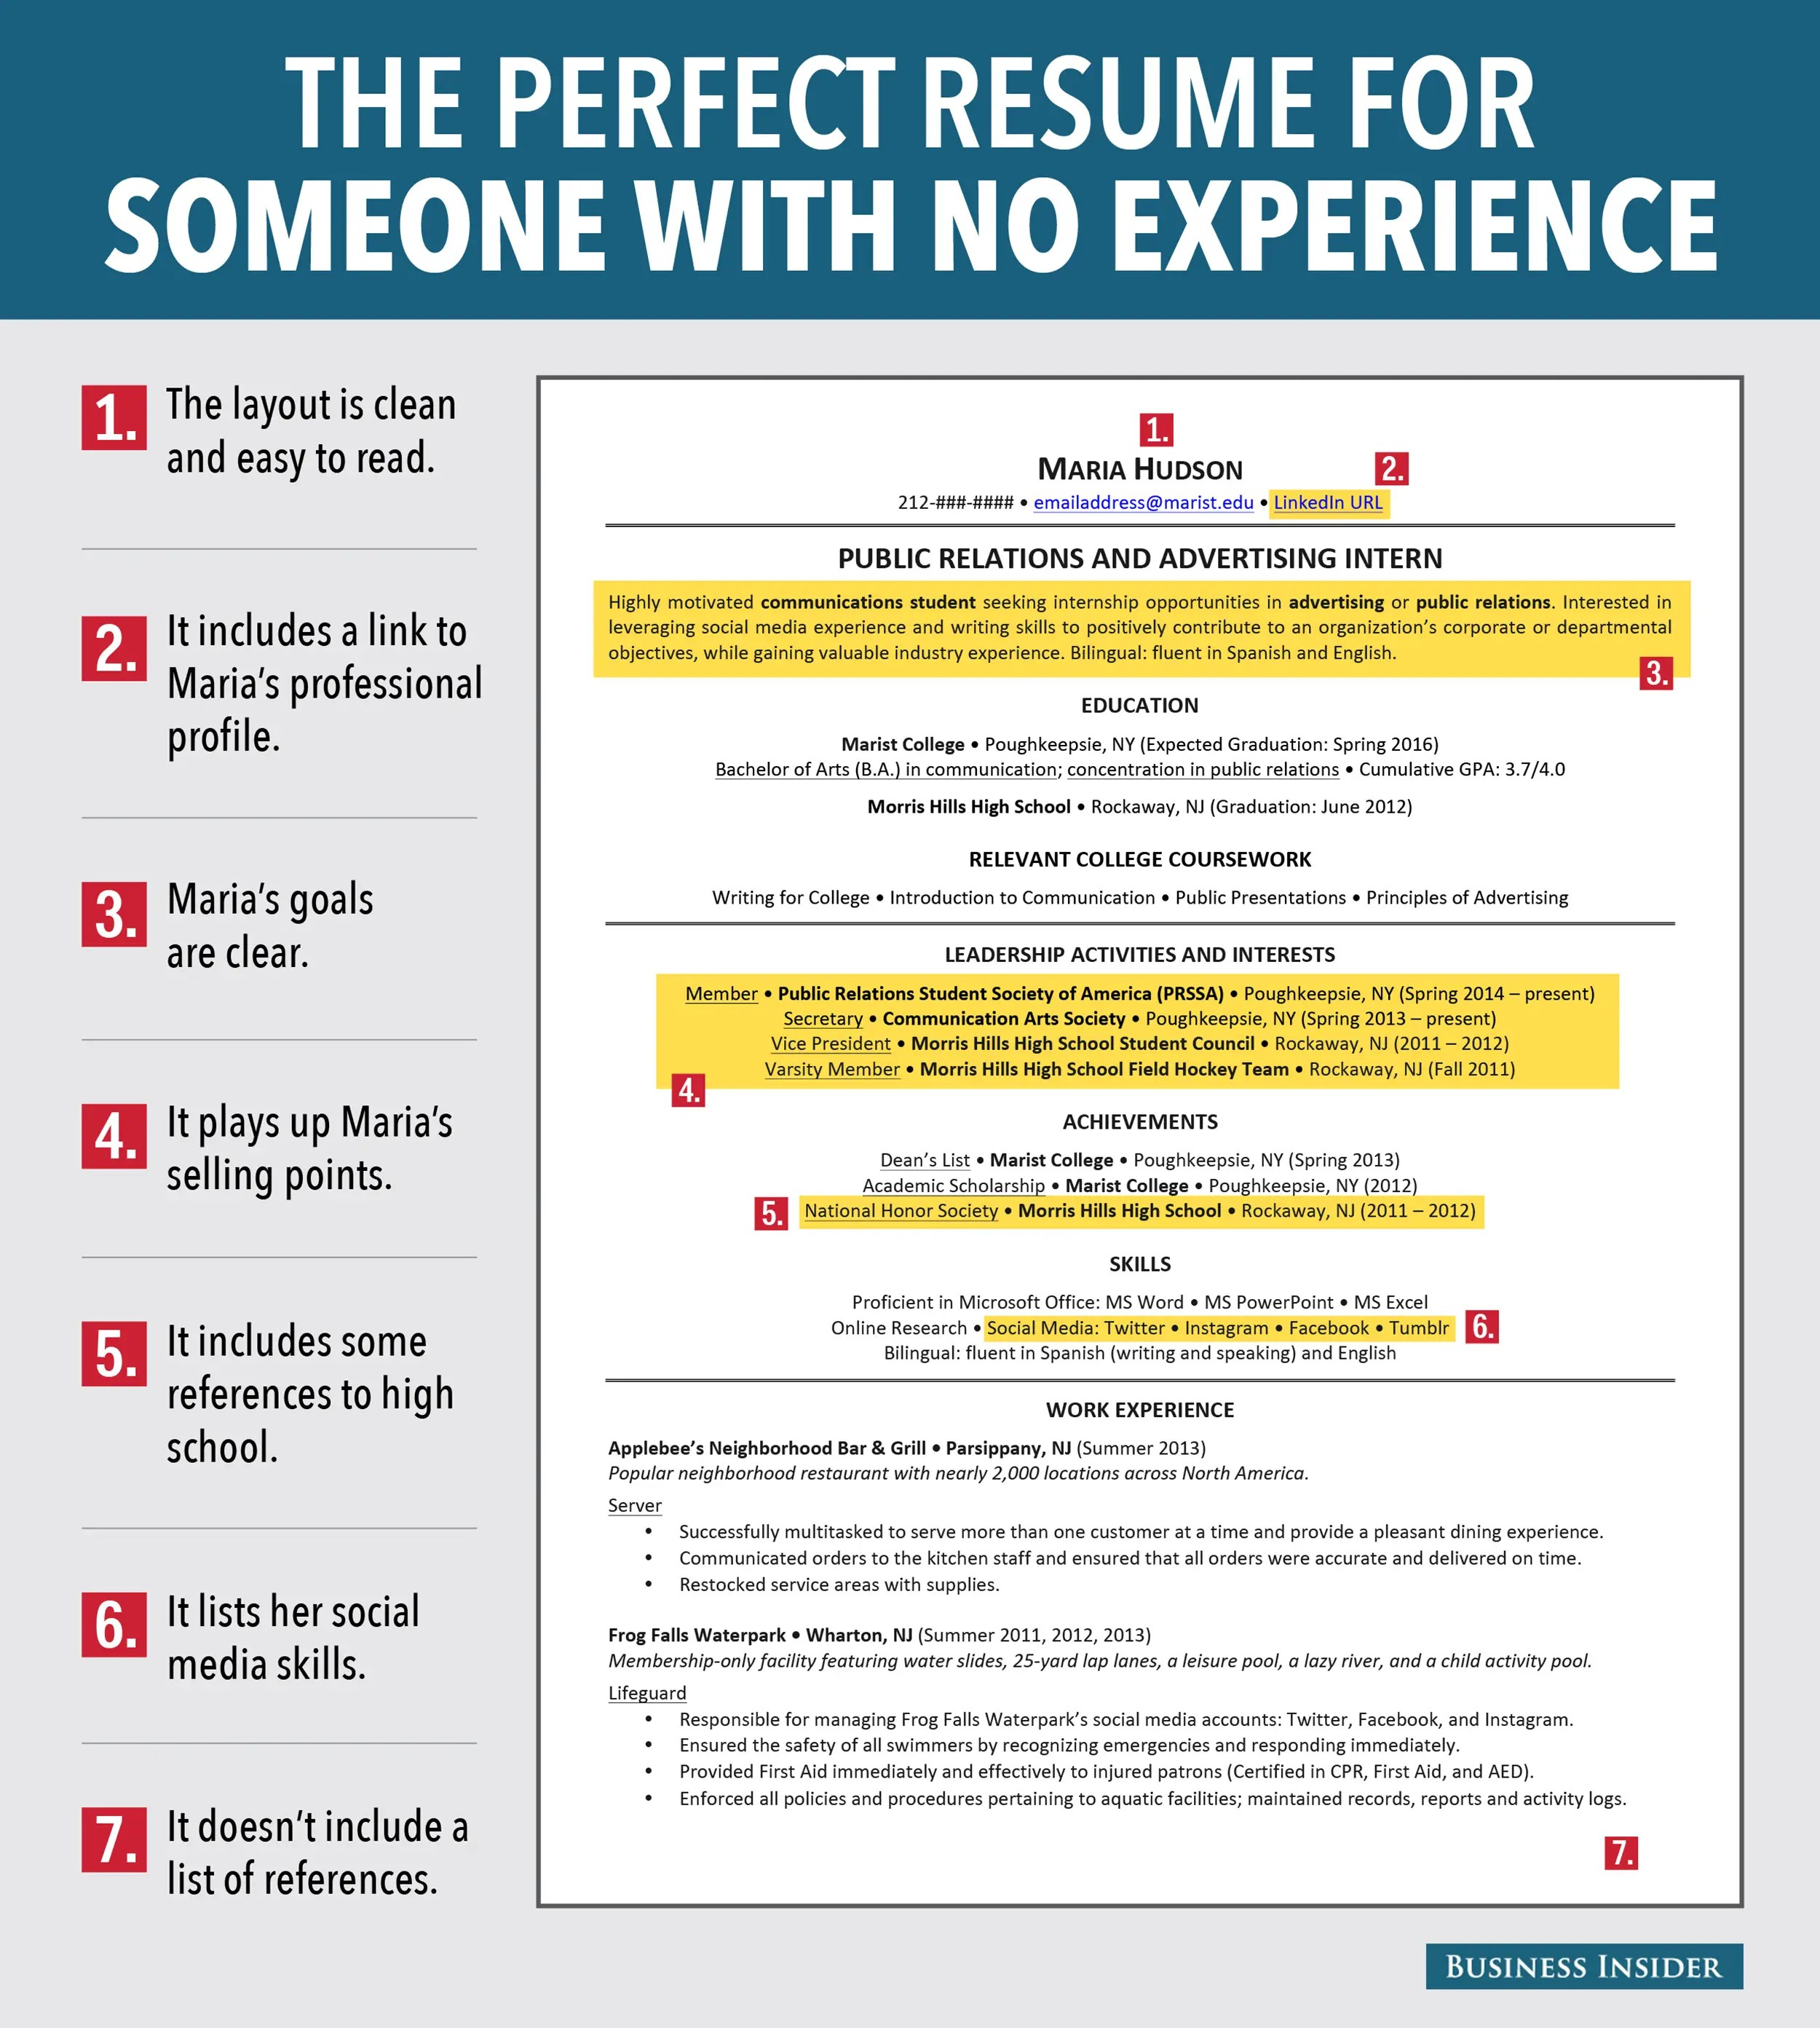 7 Reasons This Is An Excellent Resume For Someone With No